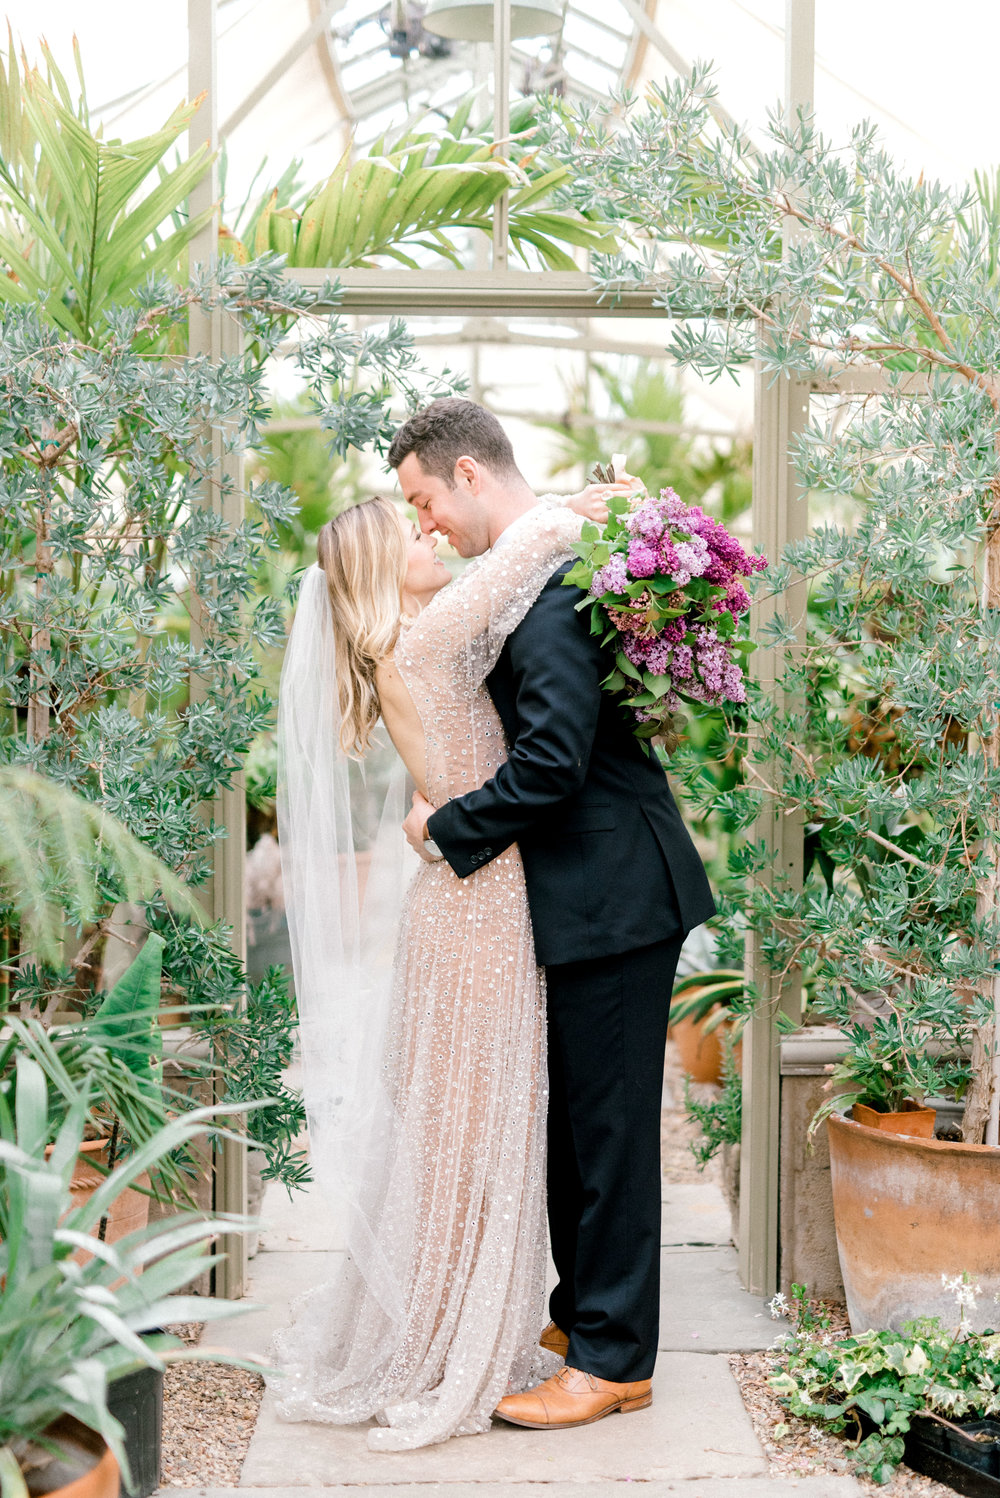 haley-richter-photography-jardin-de-buis-wedding-photos-greenhouse-wedding-bhldn-gown-lilac-wedding-bouquet-beaded-wedding-gown-new-jersey-weddings-garden-wedding-greenhouse-wedding-lilac-bouquet